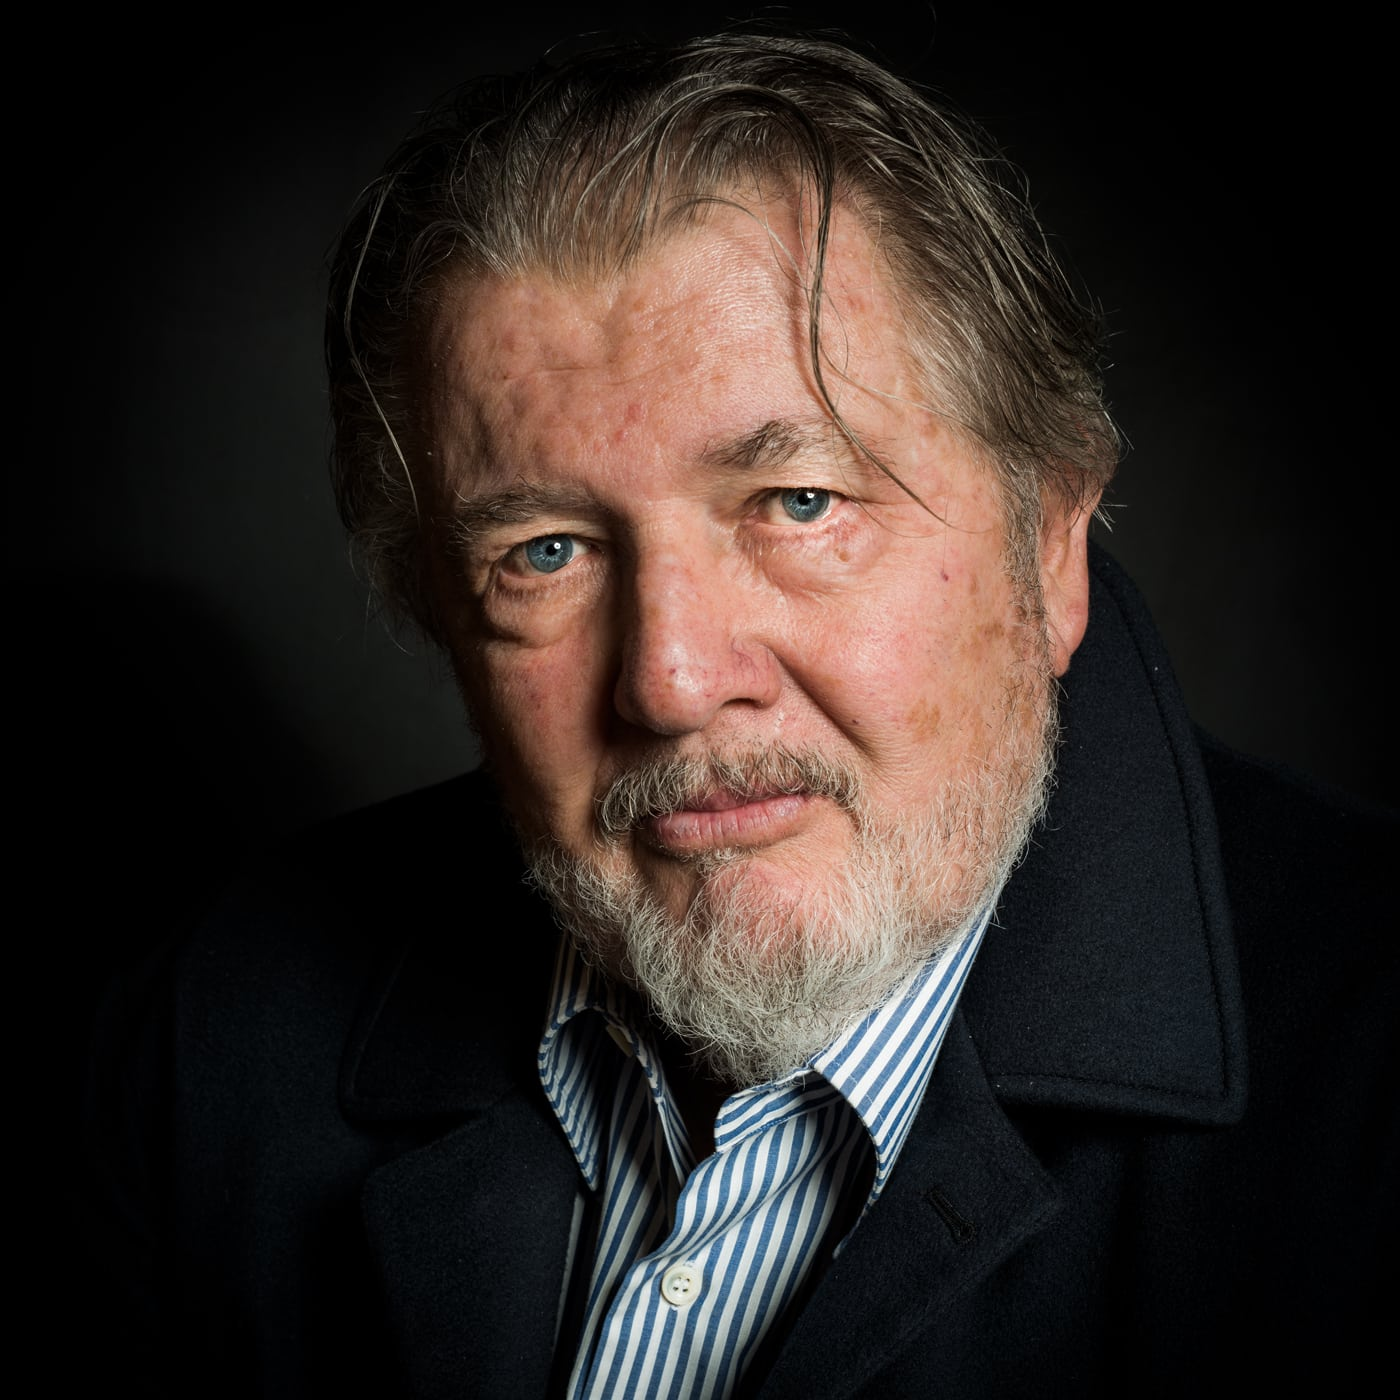 walter hill 20 Facts About The Fugitive That Might Have Escaped You